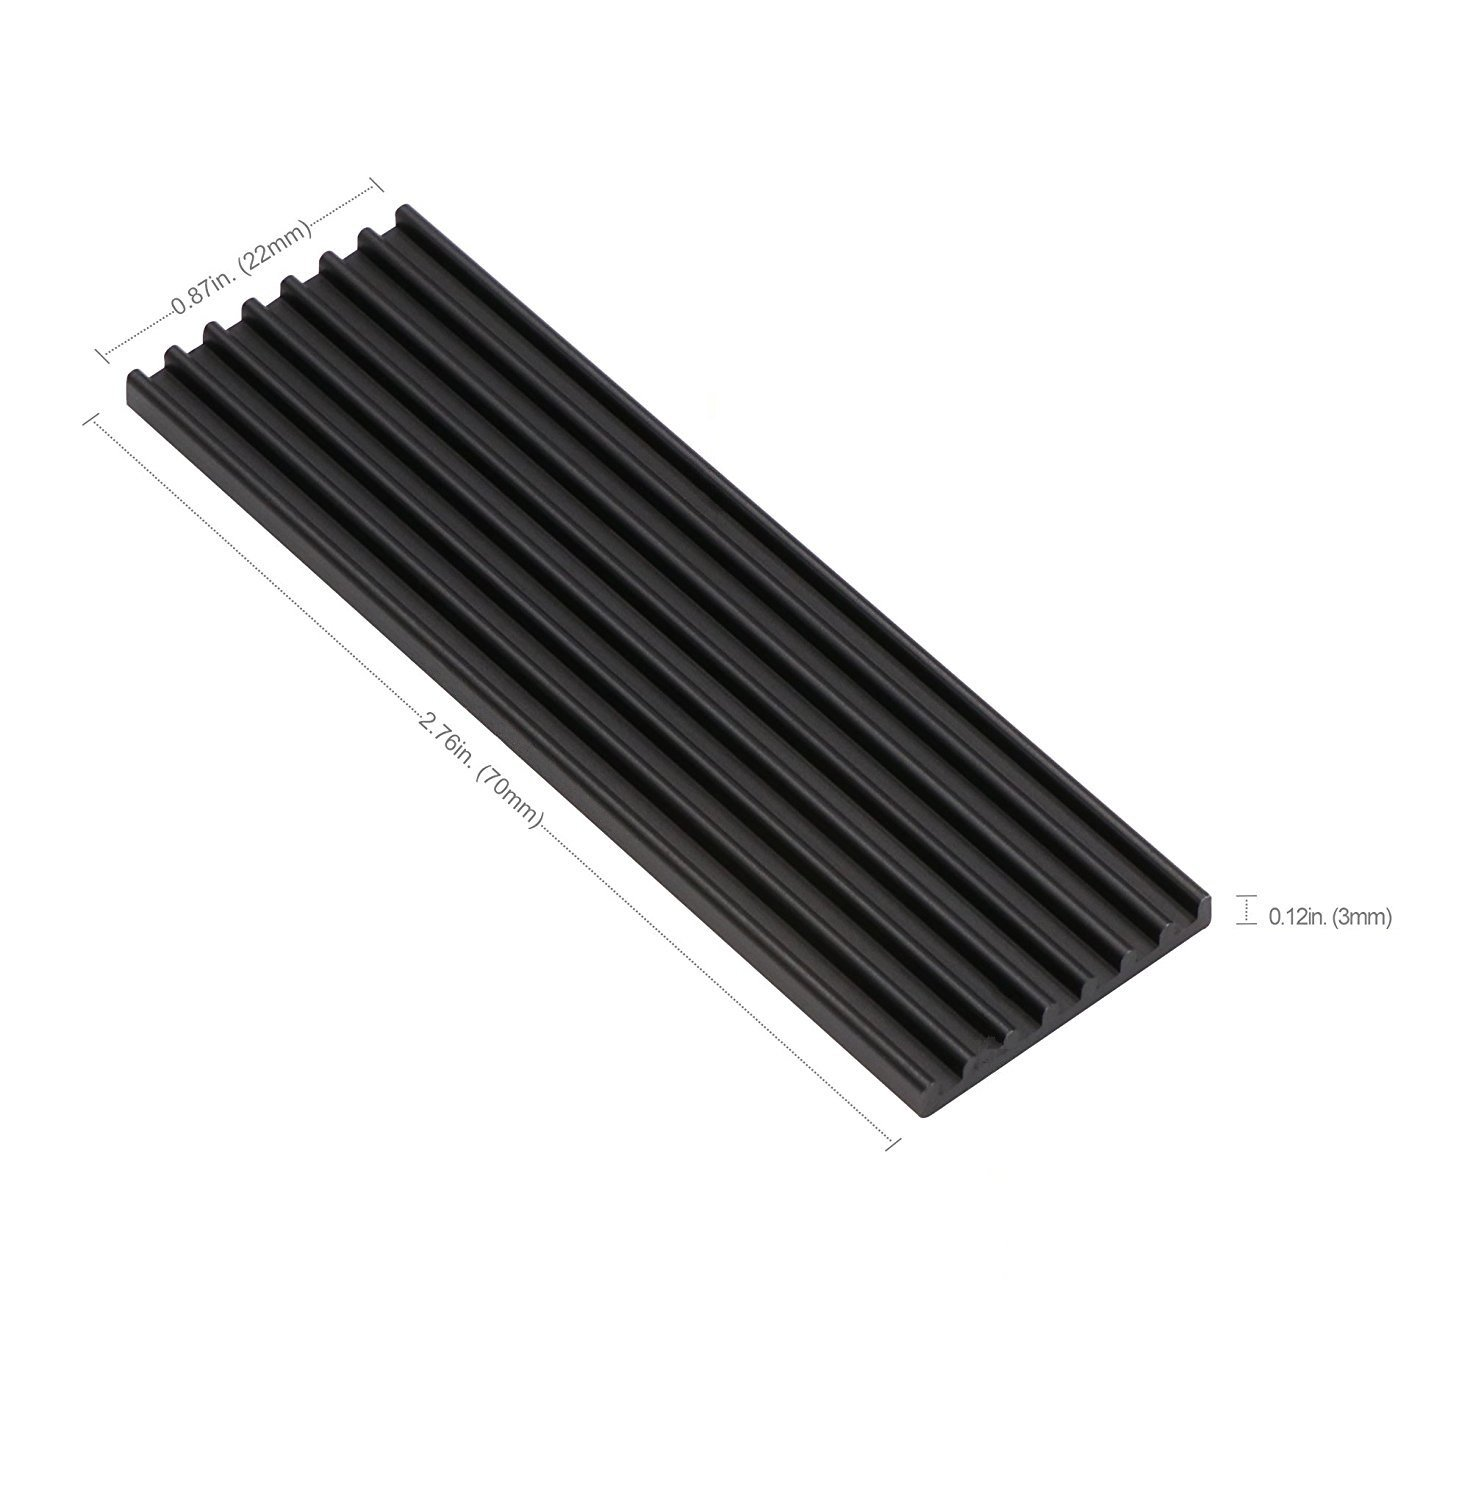 Aluminum Heatsinks for PCIe NVMe M.2 2280 SSD with Silicone Thermal Pad, DIY Laptop PC Memory Cooling Fin Radiation Dissipate (Ordinary Edition) by Angel mall (Image #2)